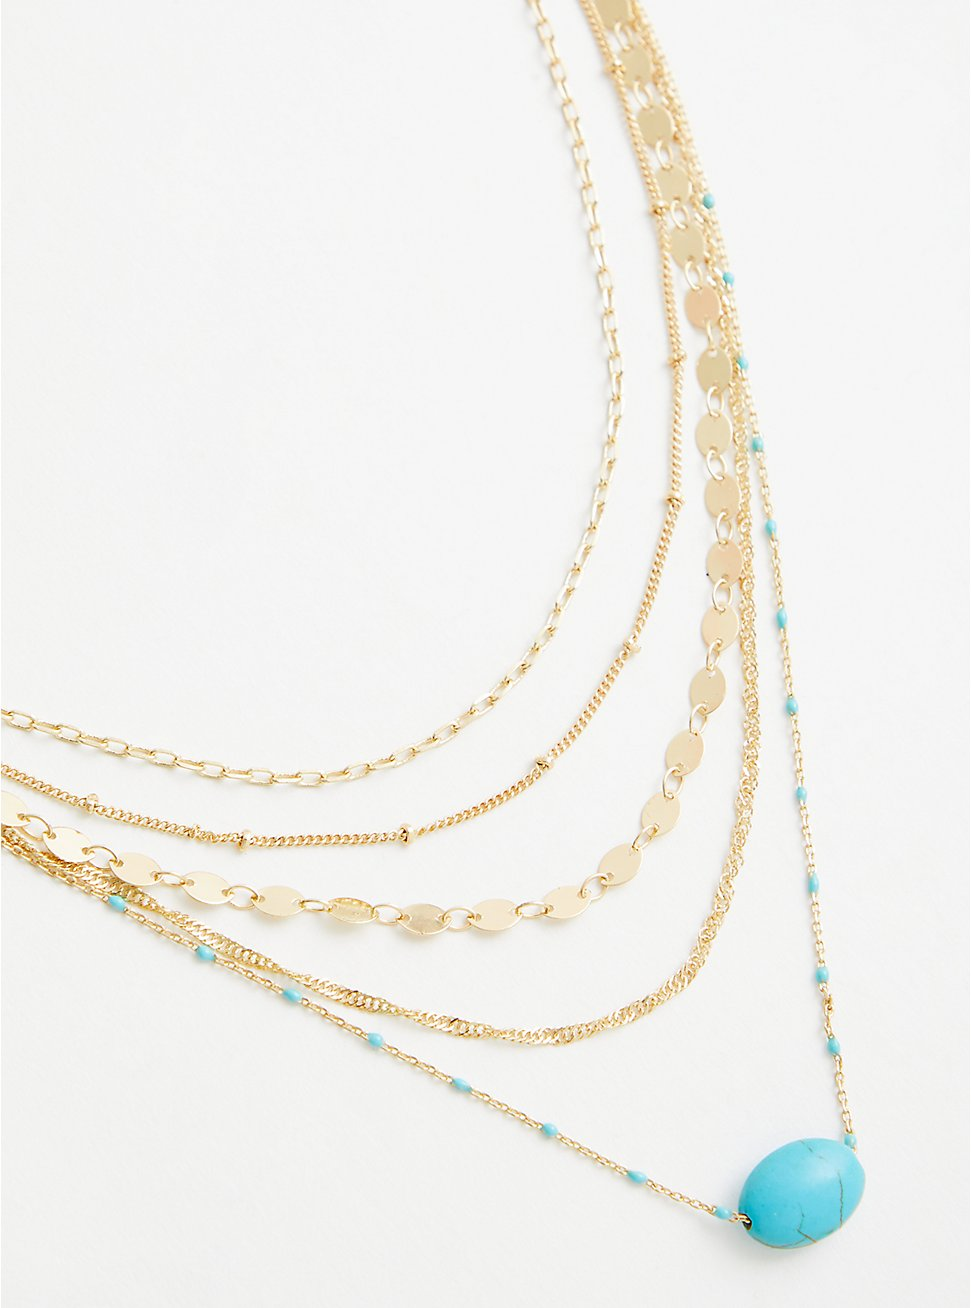 Faux Turquoise Microbead Layered Necklace - Gold Tone, , hi-res